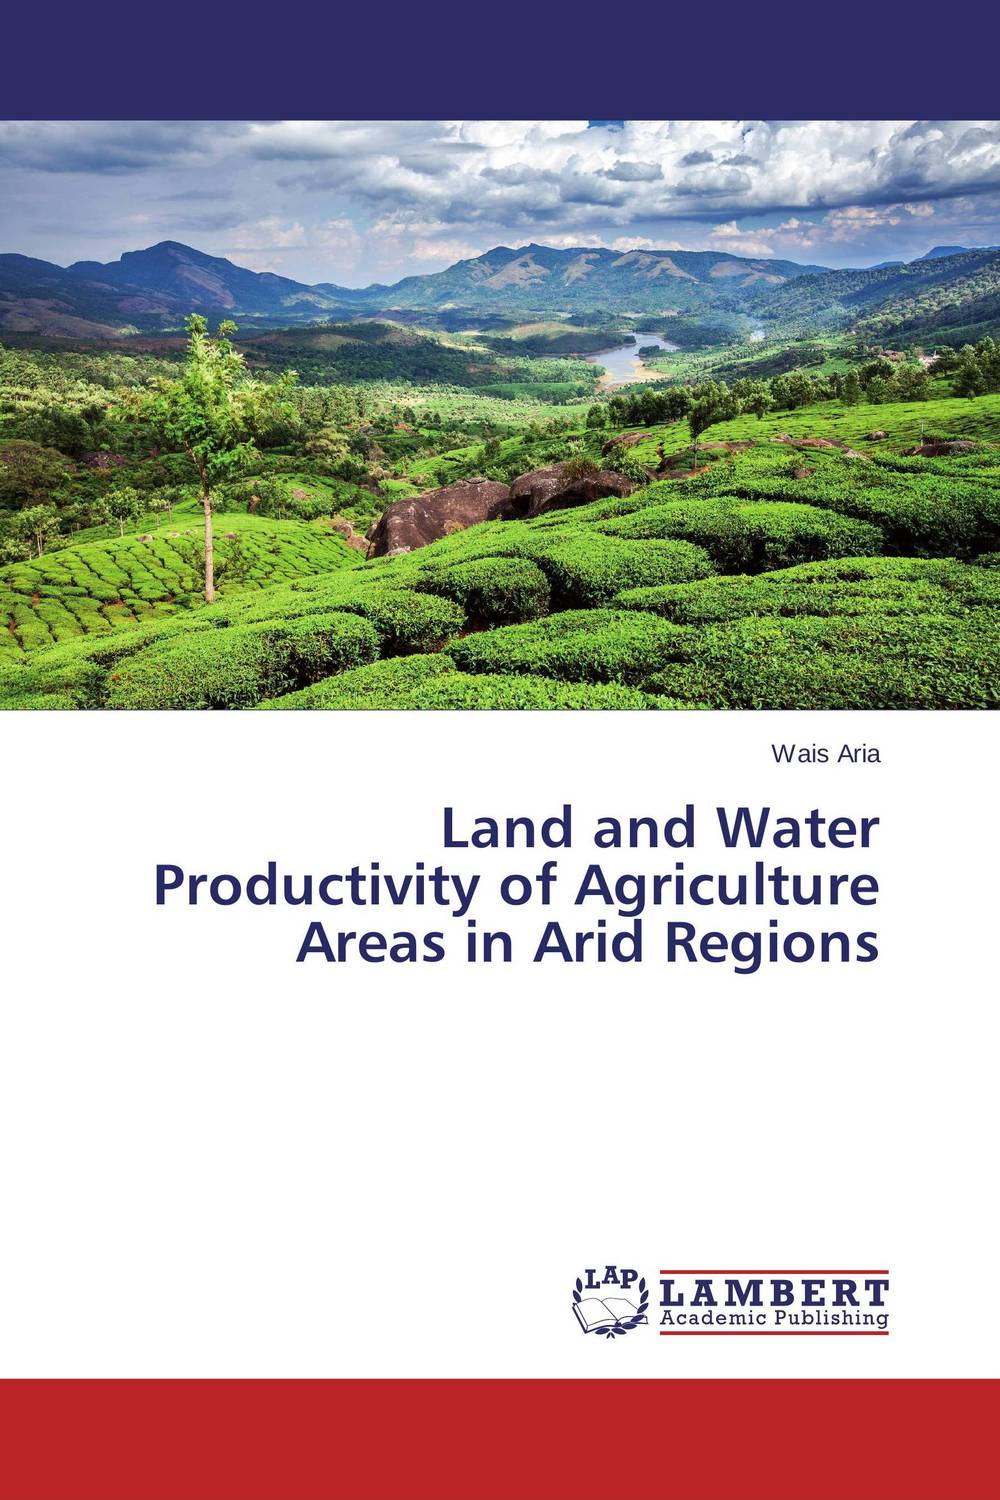 Land and Water Productivity of Agriculture Areas in Arid Regions thermo operated water valves can be used in food processing equipments biomass boilers and hydraulic systems